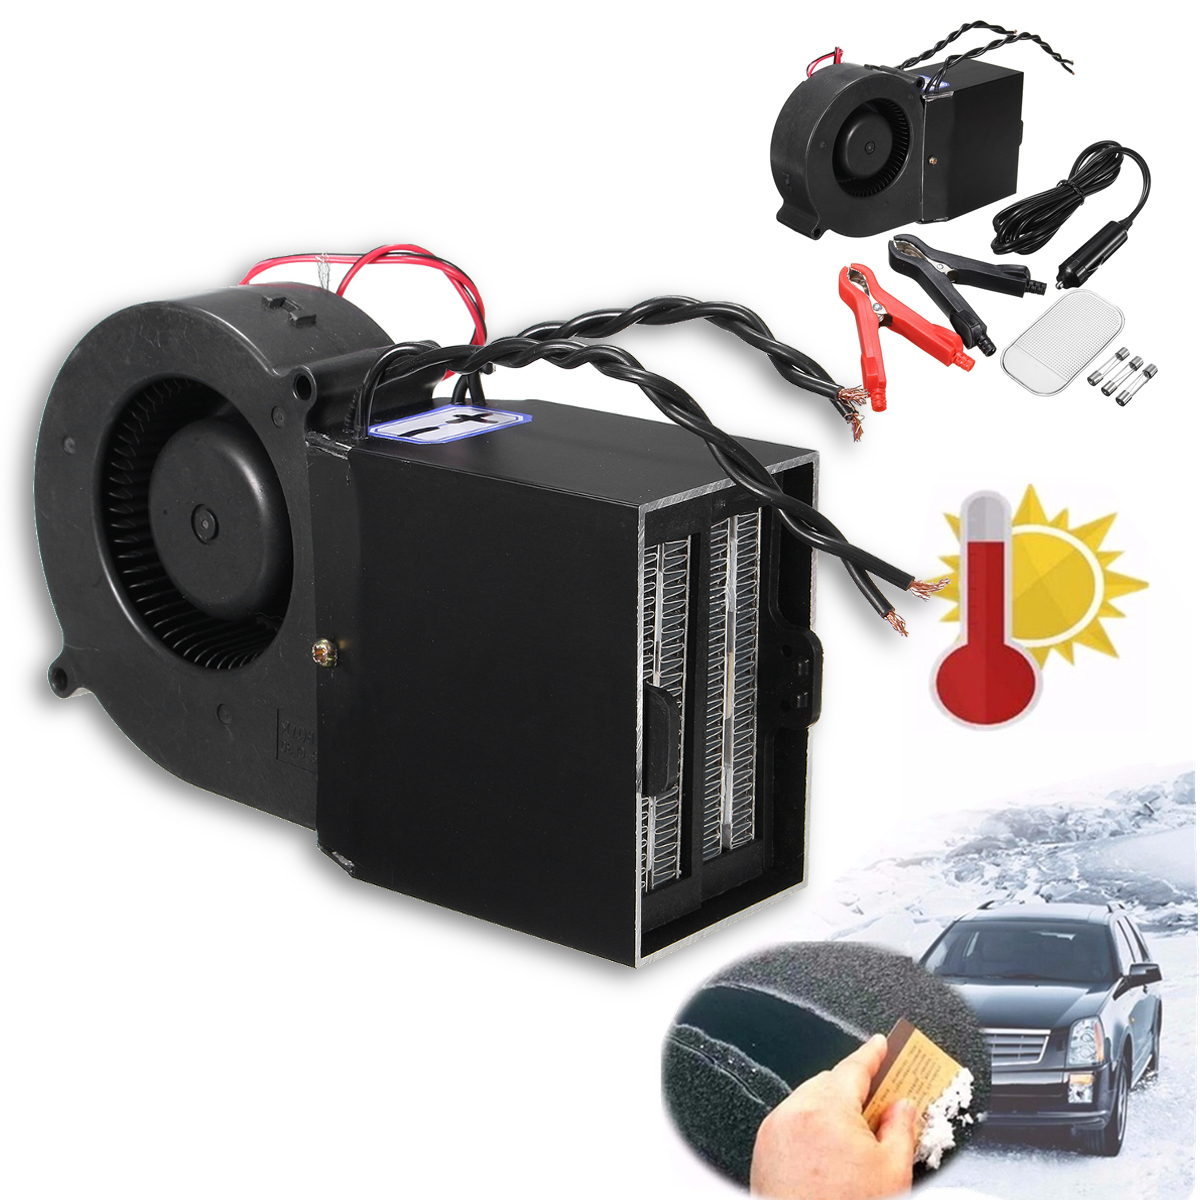 12v 300w 500w voiture ptc c ramique ventilateur chauffage. Black Bedroom Furniture Sets. Home Design Ideas